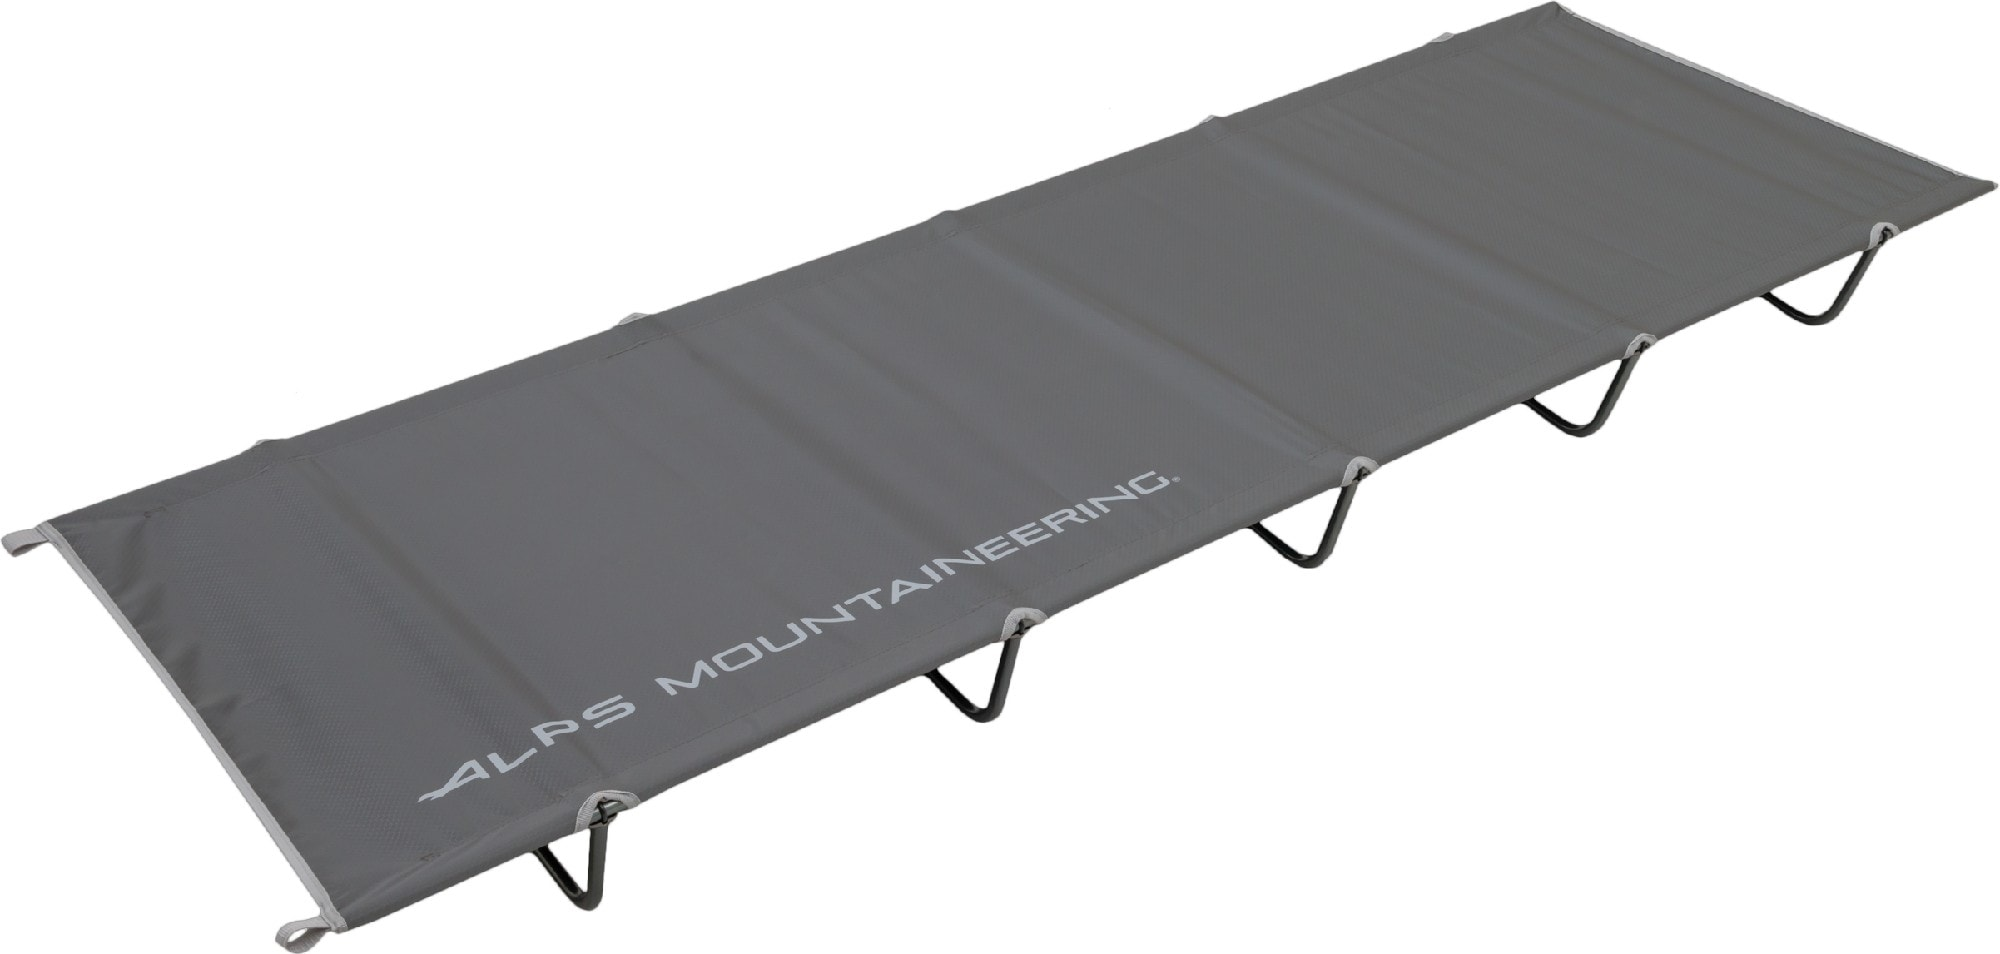 ALPS Mountaineerinf ready lite cot